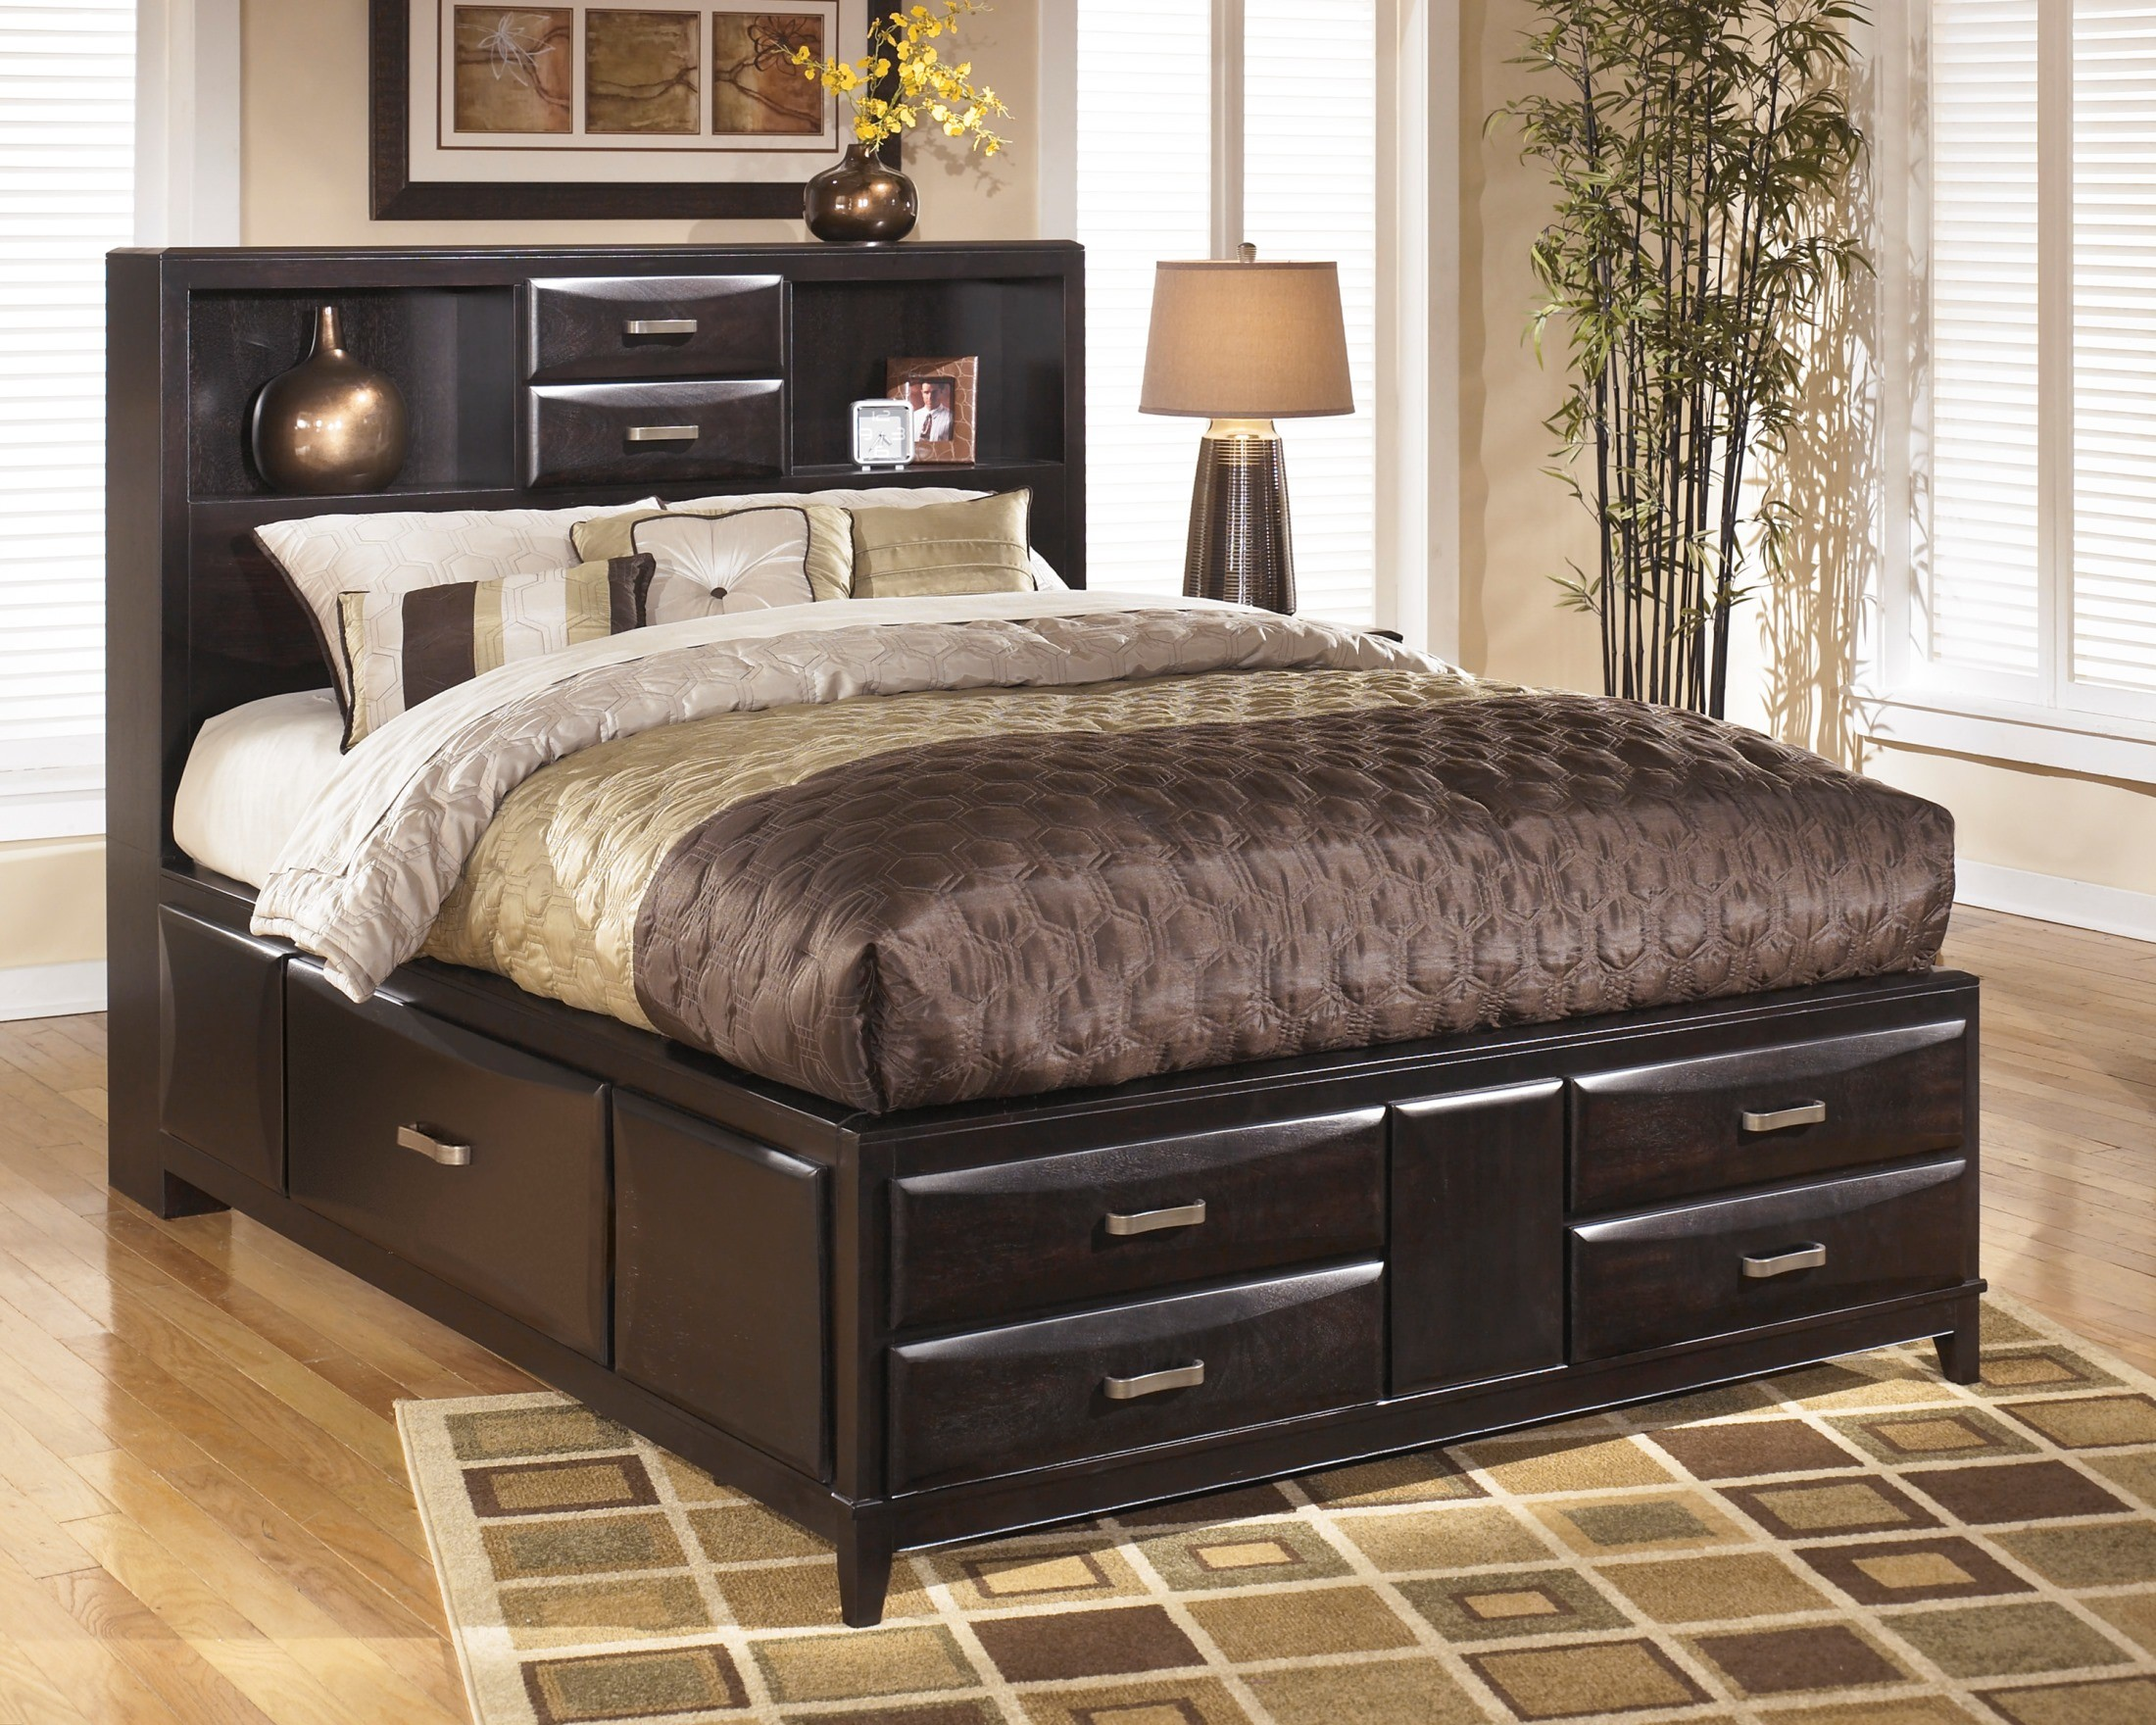 Kira Queen Bed With Storage